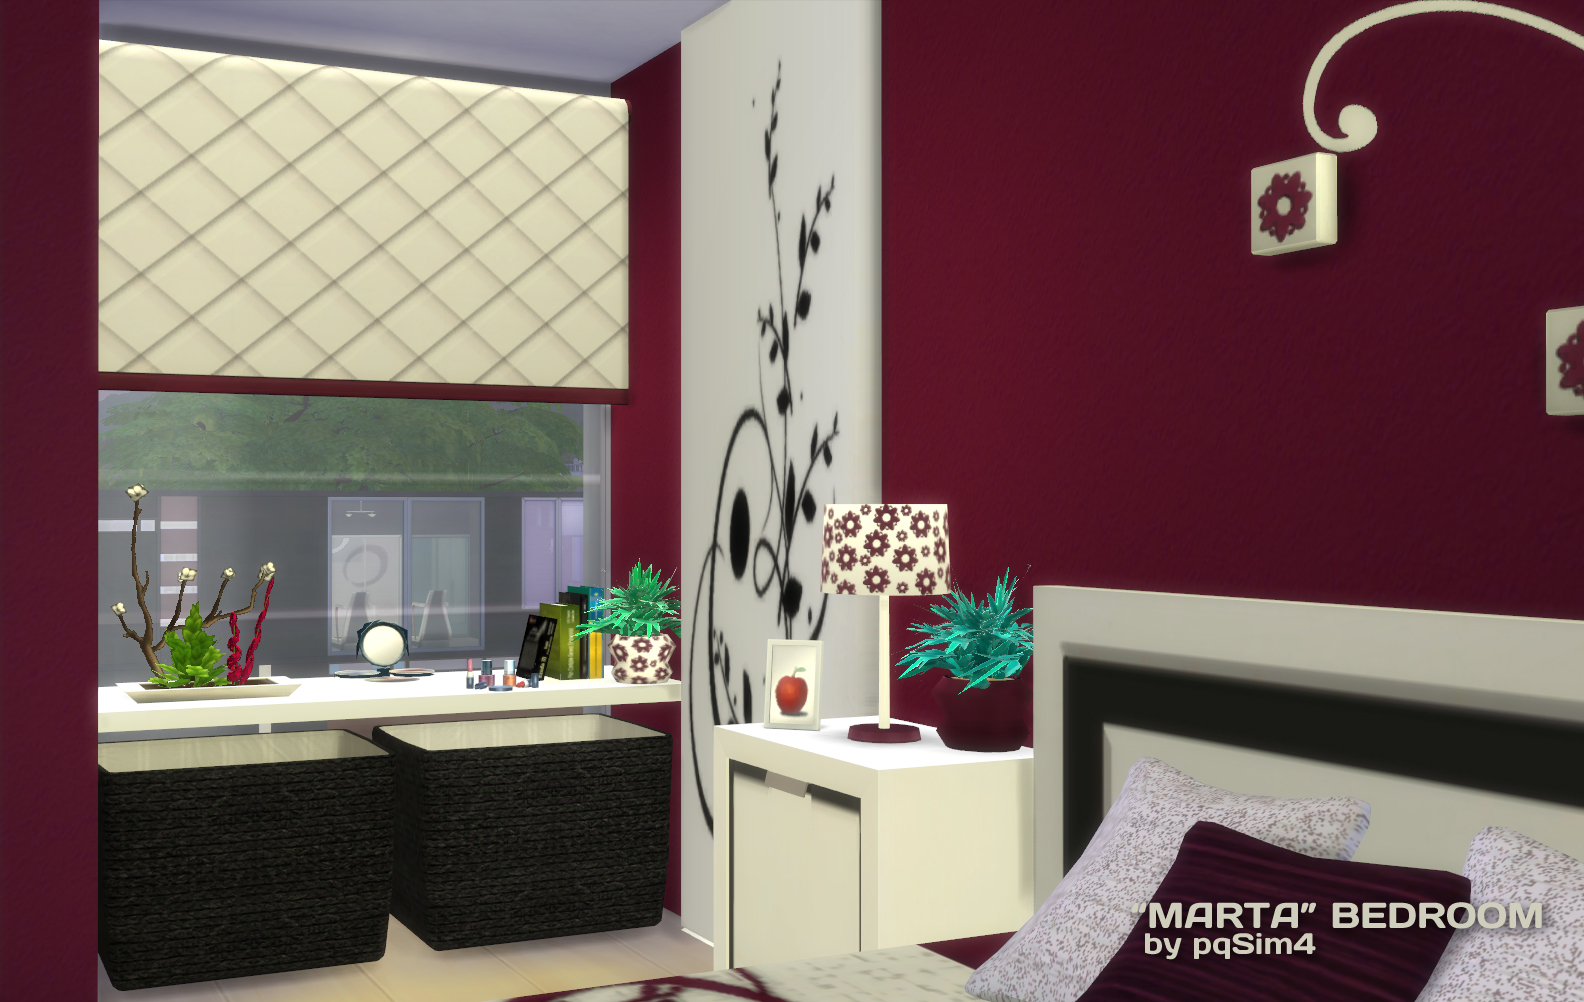 MARTA BEDROOM By  PQSIMS4